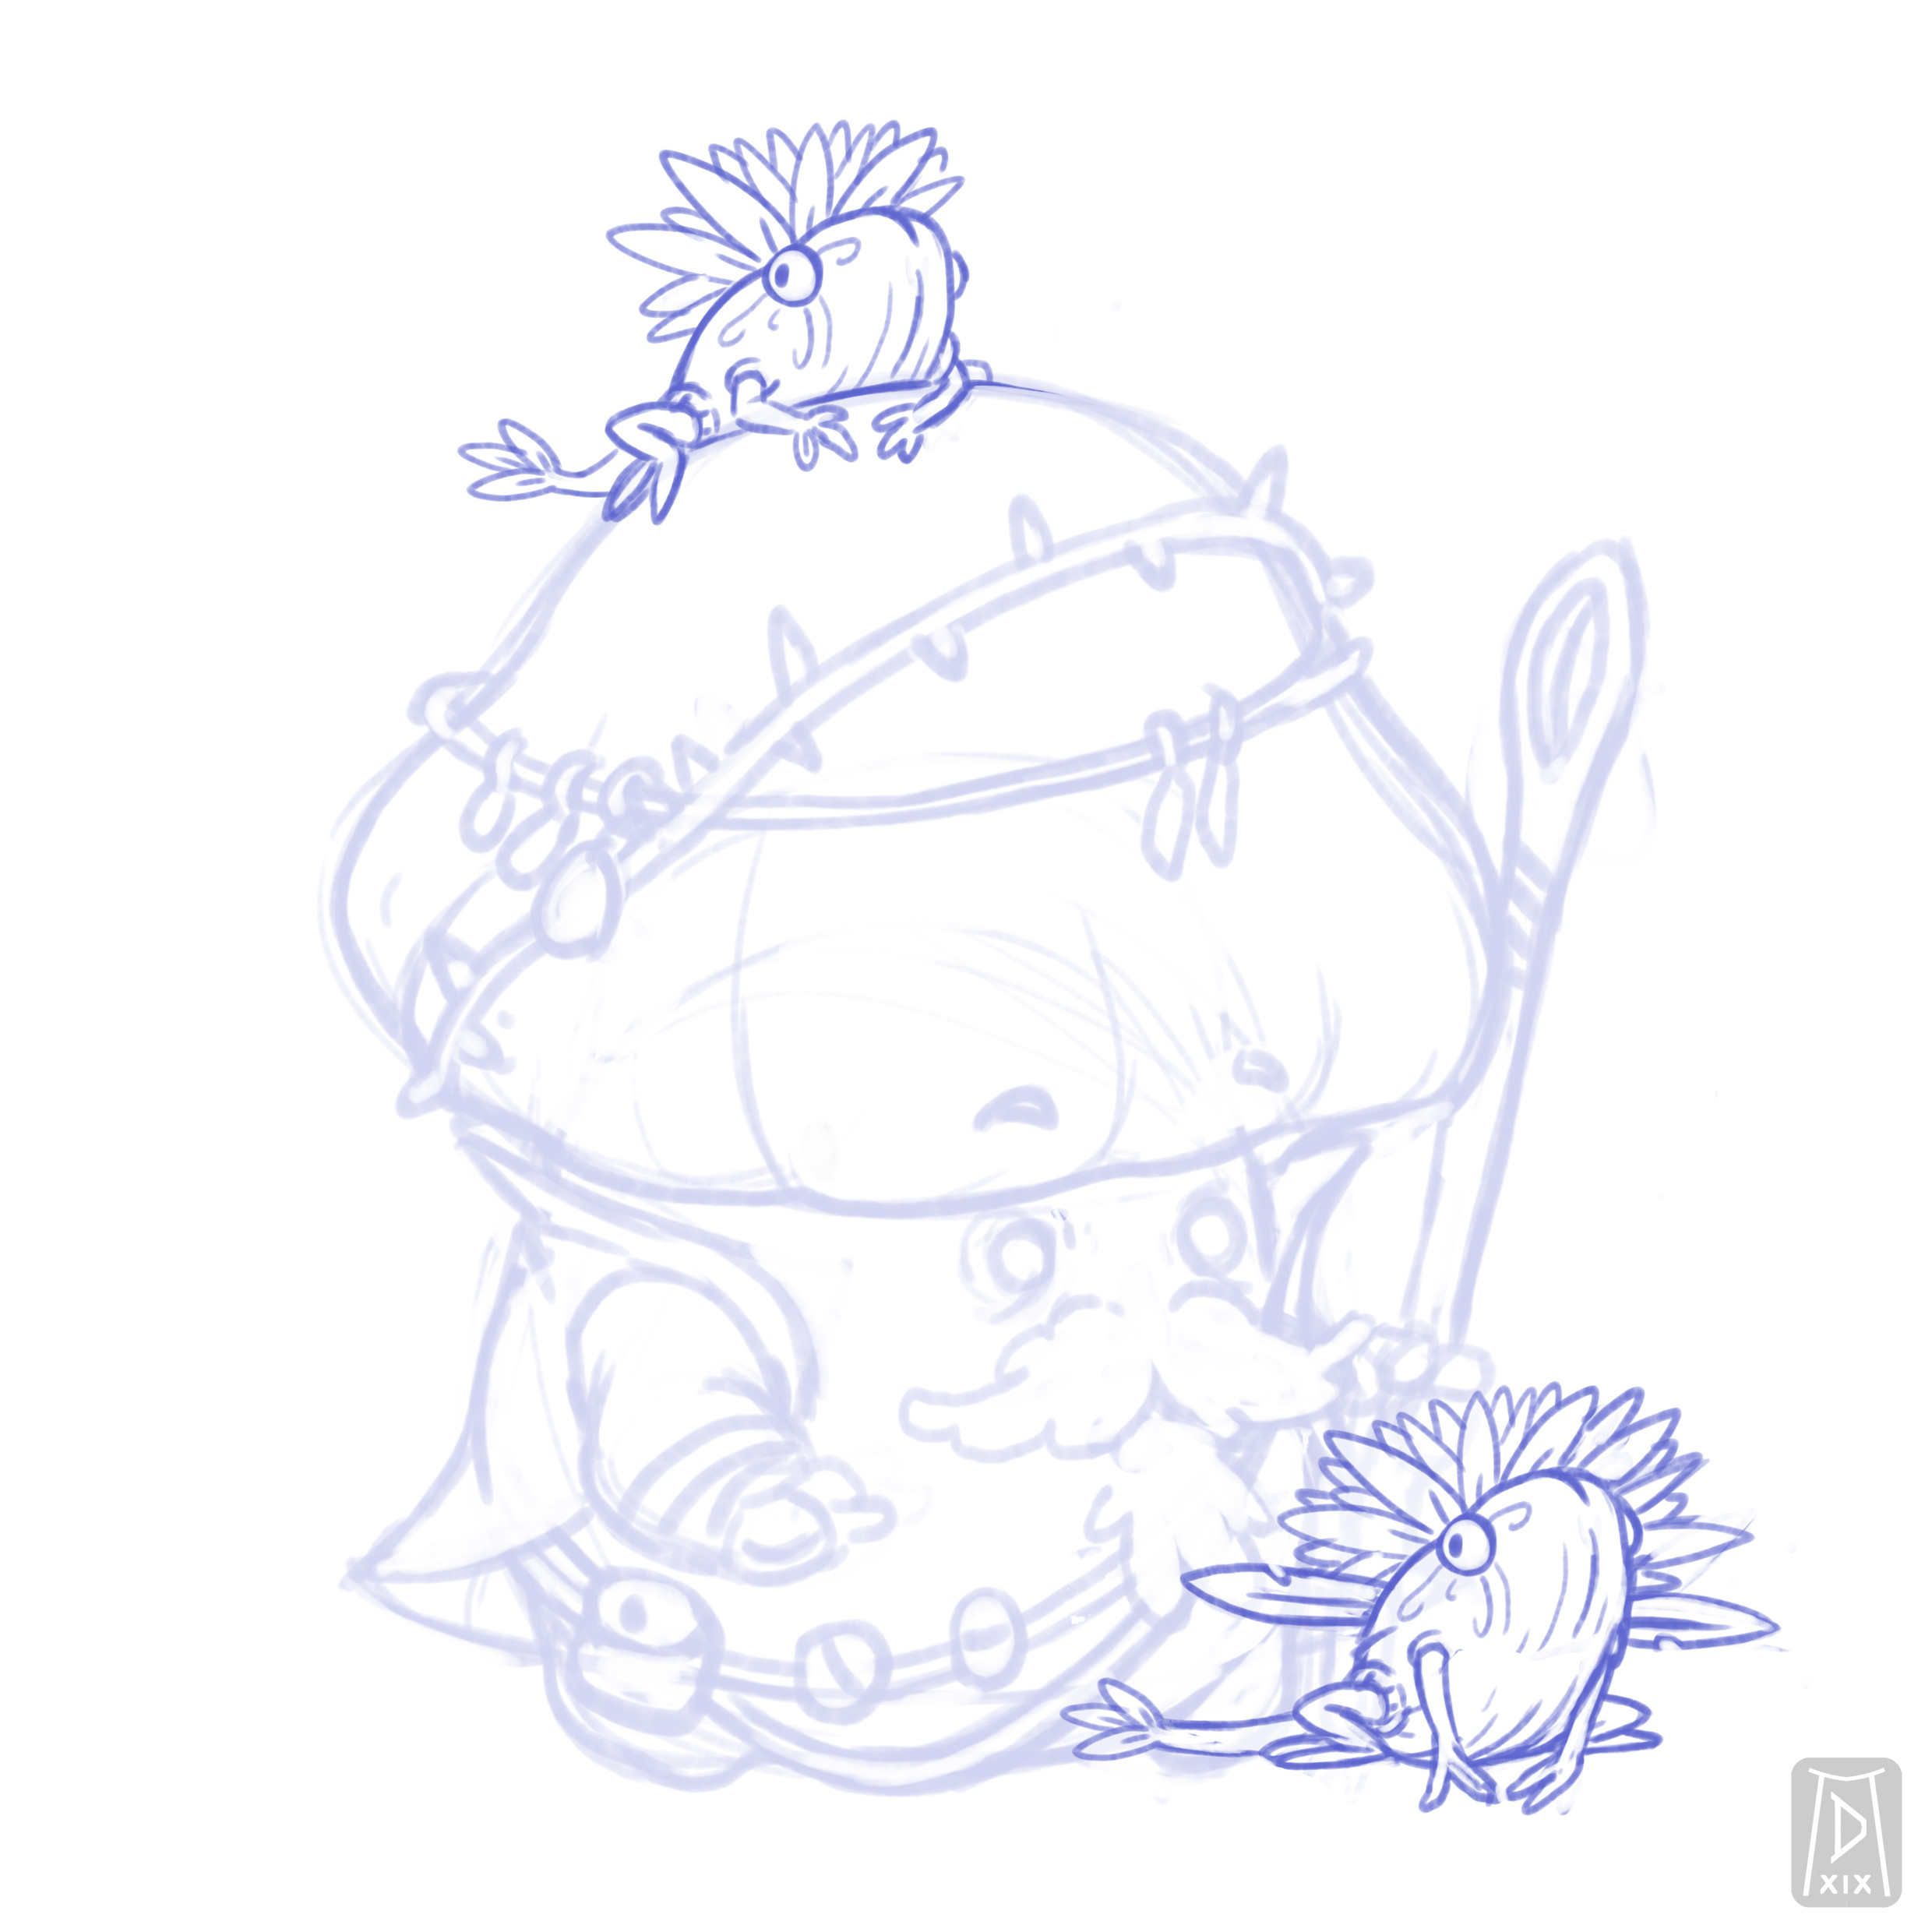 I also made some sketches for the familiars, some seed-frog creatures